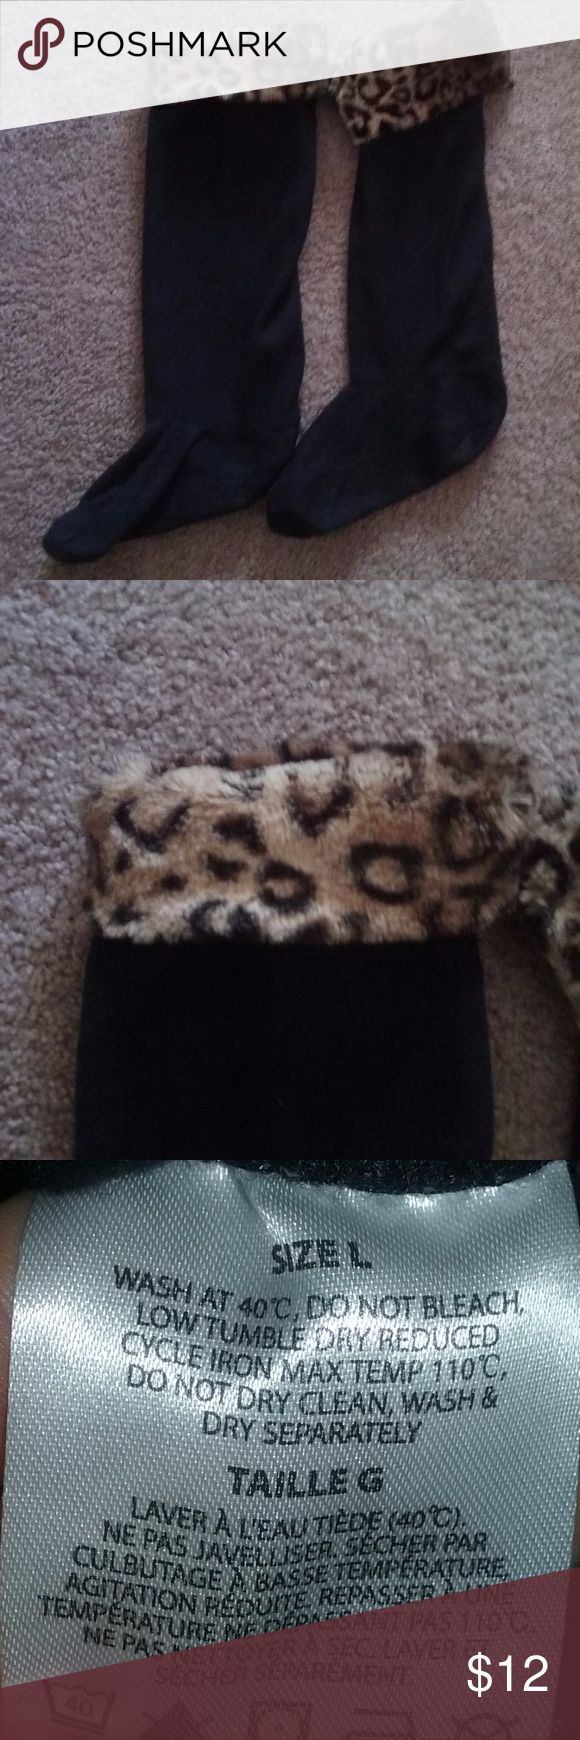 "Chinese Laundry Furry Top Boot Liners Size Large Cute black fold over leopard print furry top boot liners, size large.  For use to keep your feet dry in snow and rain, they do not fit tight to your feet, they are liners. Measure approximately 20.5"" long with top unfolded.   They fit for ladies shoe size 9/10. Chinese Laundry Accessories"